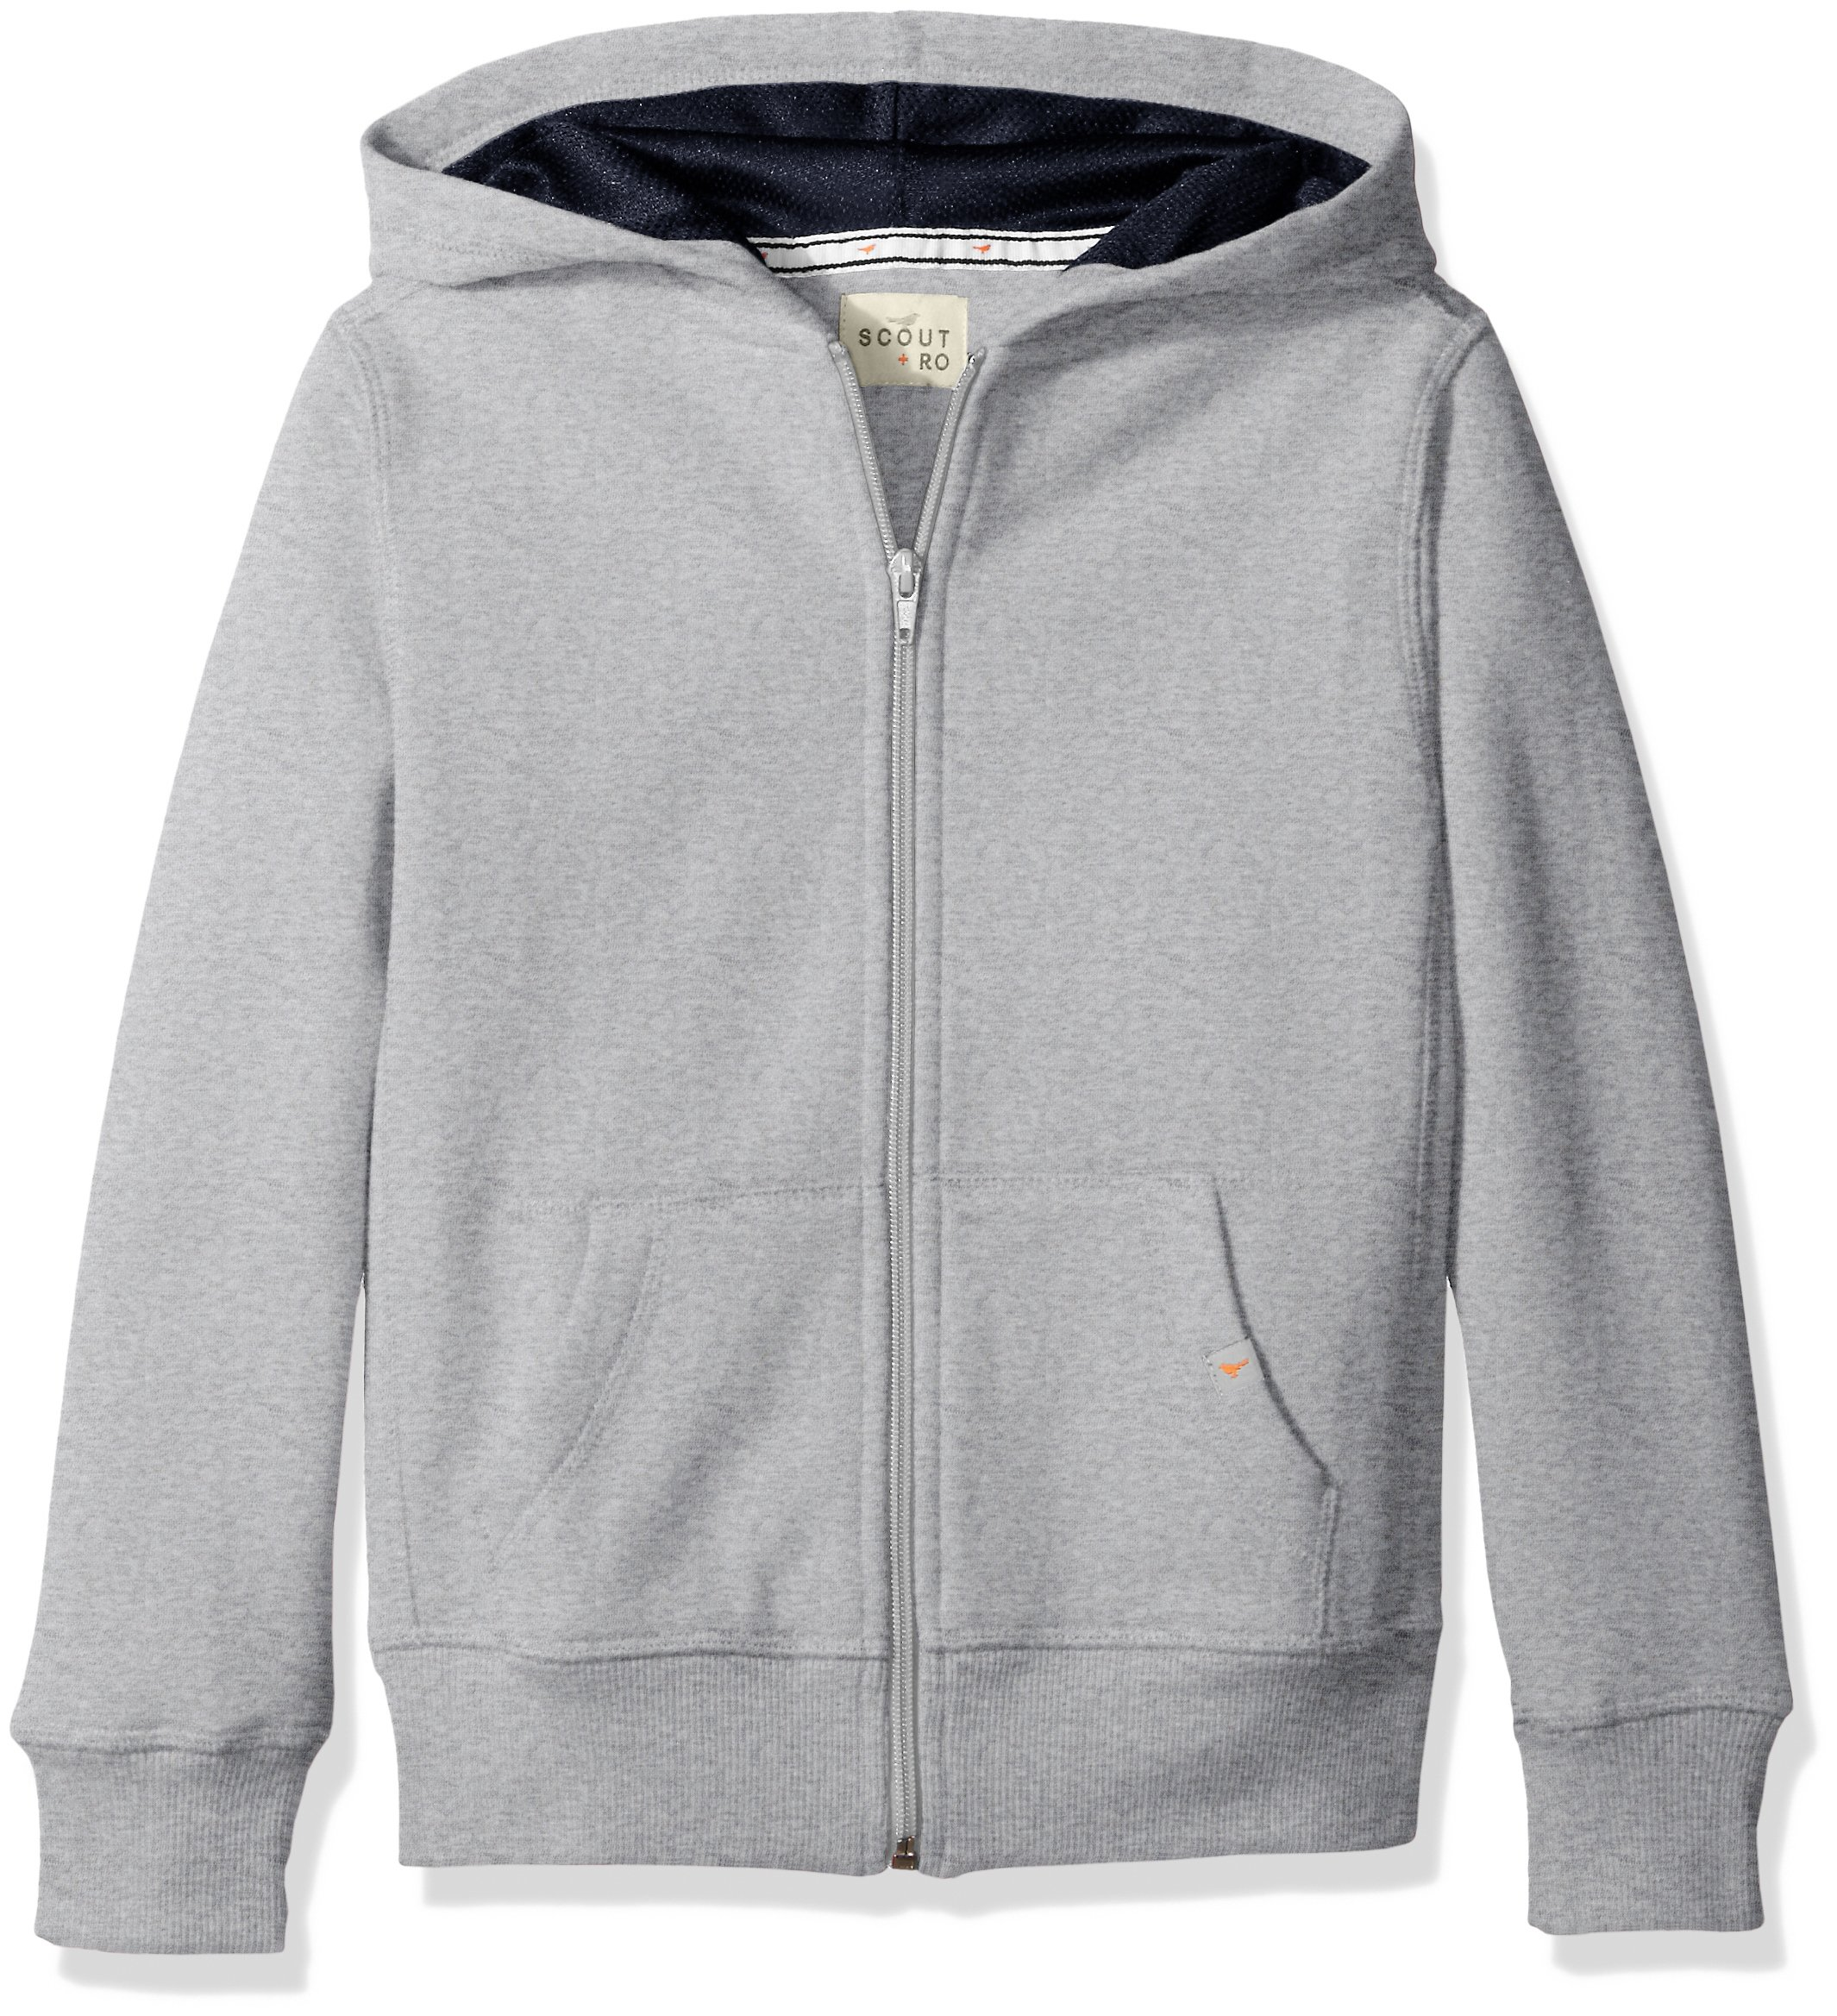 Scout + Ro Big Boys' Basic Fleece Hooded Jacket, Grey Heather, 14 by Scout + Ro (Image #1)